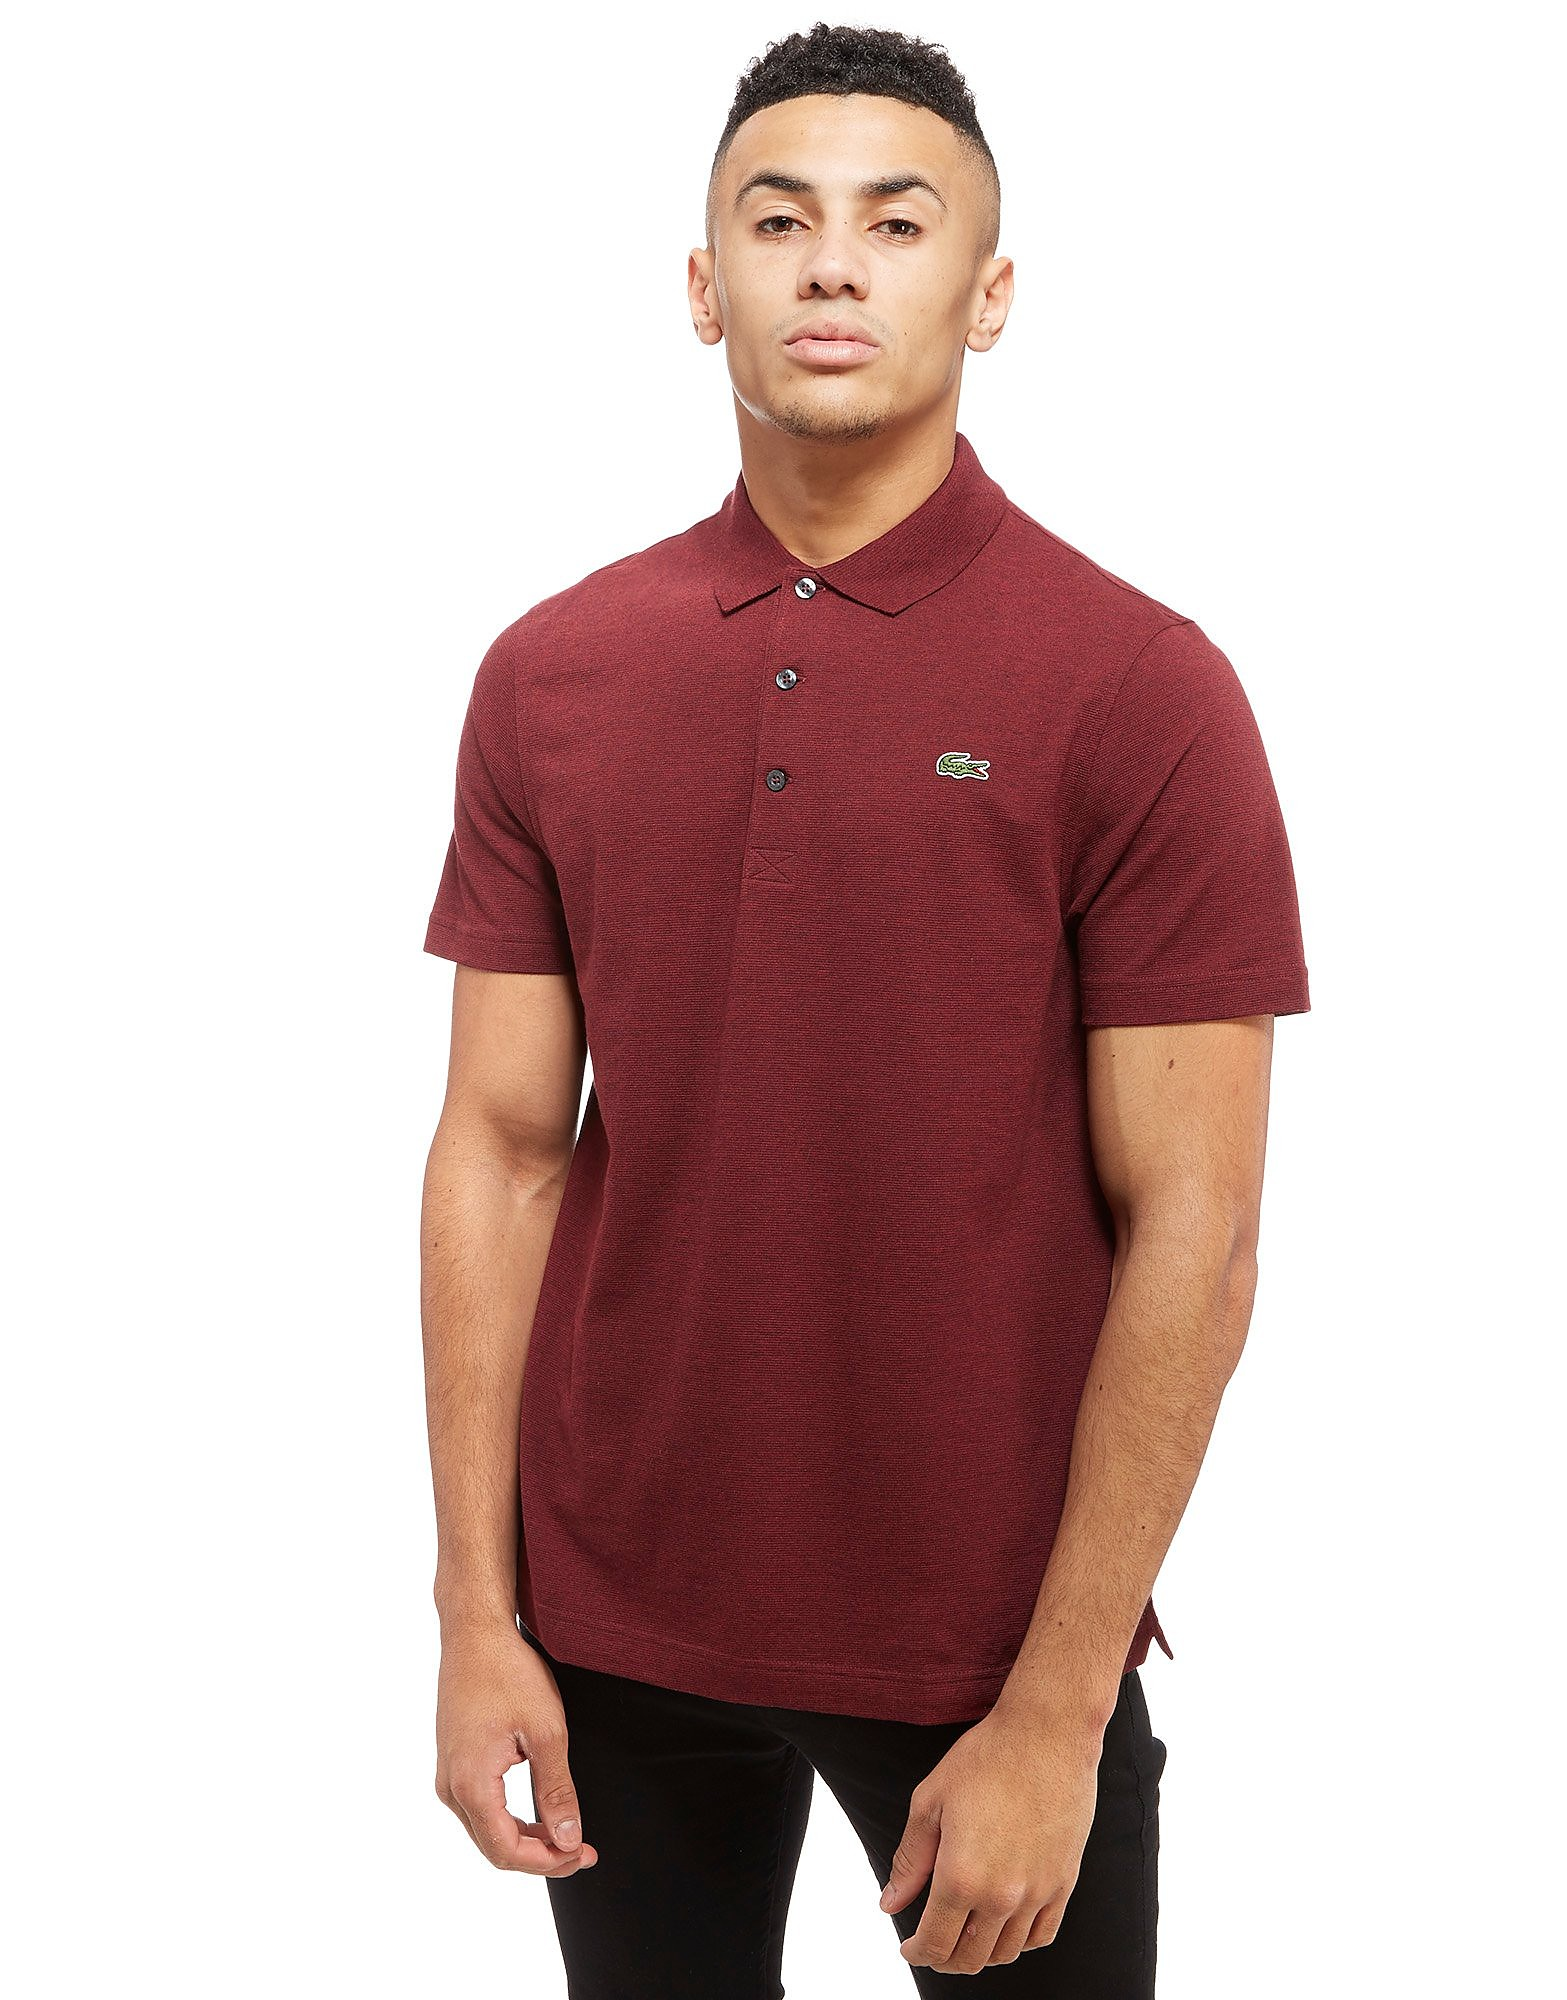 Lacoste Alligator Polo Shirt